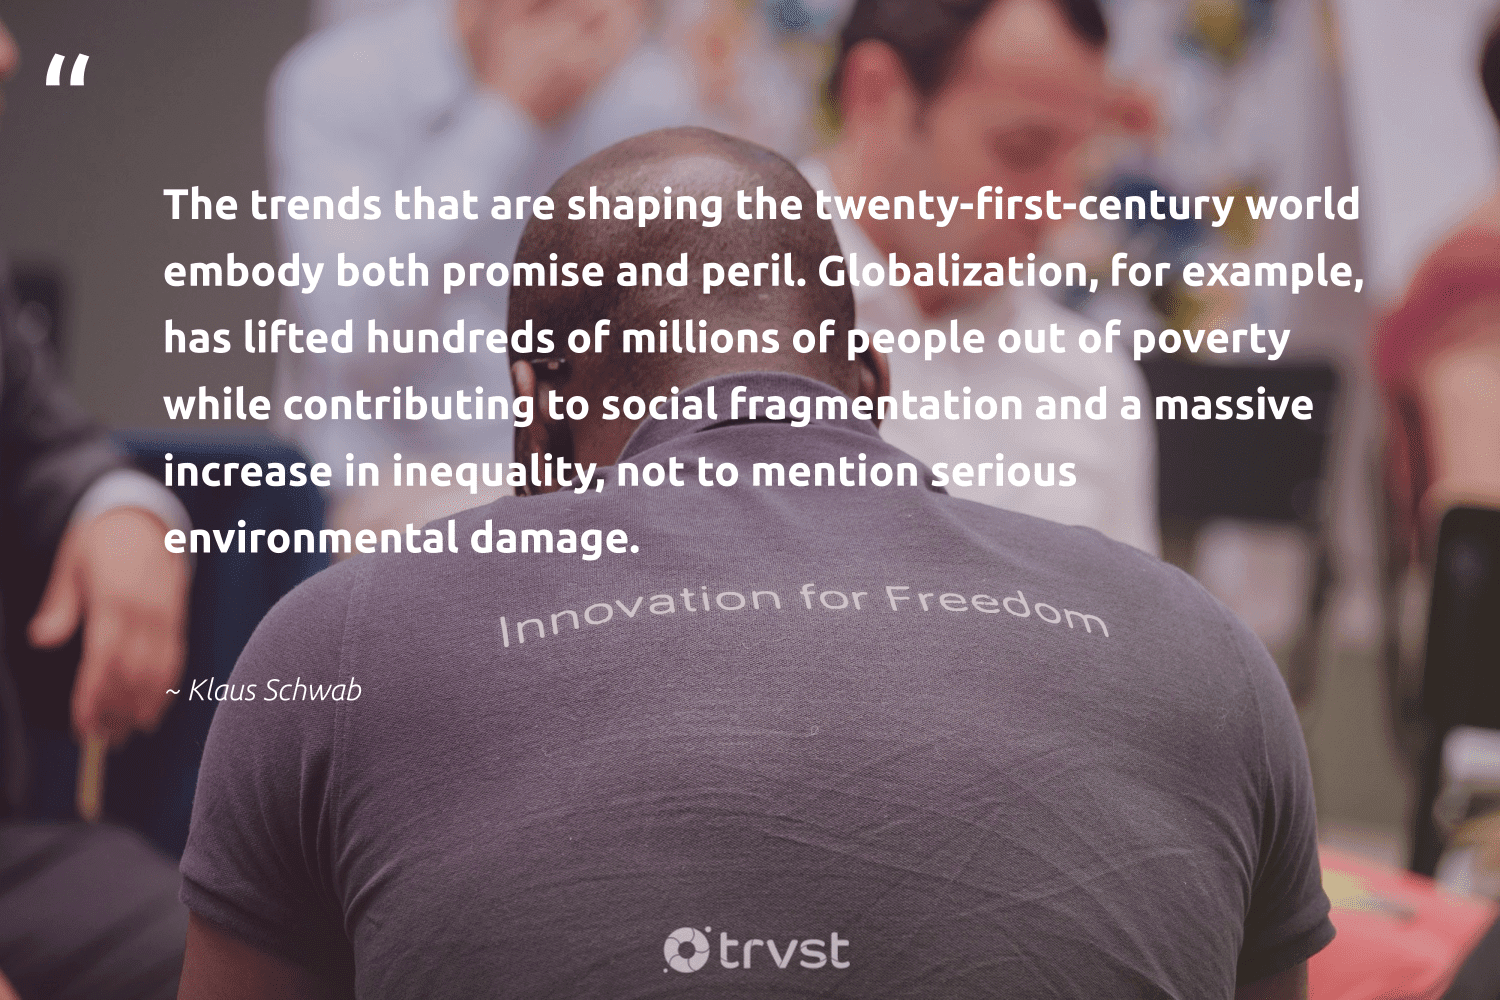 """""""The trends that are shaping the twenty-first-century world embody both promise and peril. Globalization, for example, has lifted hundreds of millions of people out of poverty while contributing to social fragmentation and a massive increase in inequality, not to mention serious environmental damage.""""  - Klaus Schwab #trvst #quotes #environmental #poverty #endpoverty #socialchange #equalrights #planetearthfirst #giveback #sustainablefutures #collectiveaction #socialgood"""